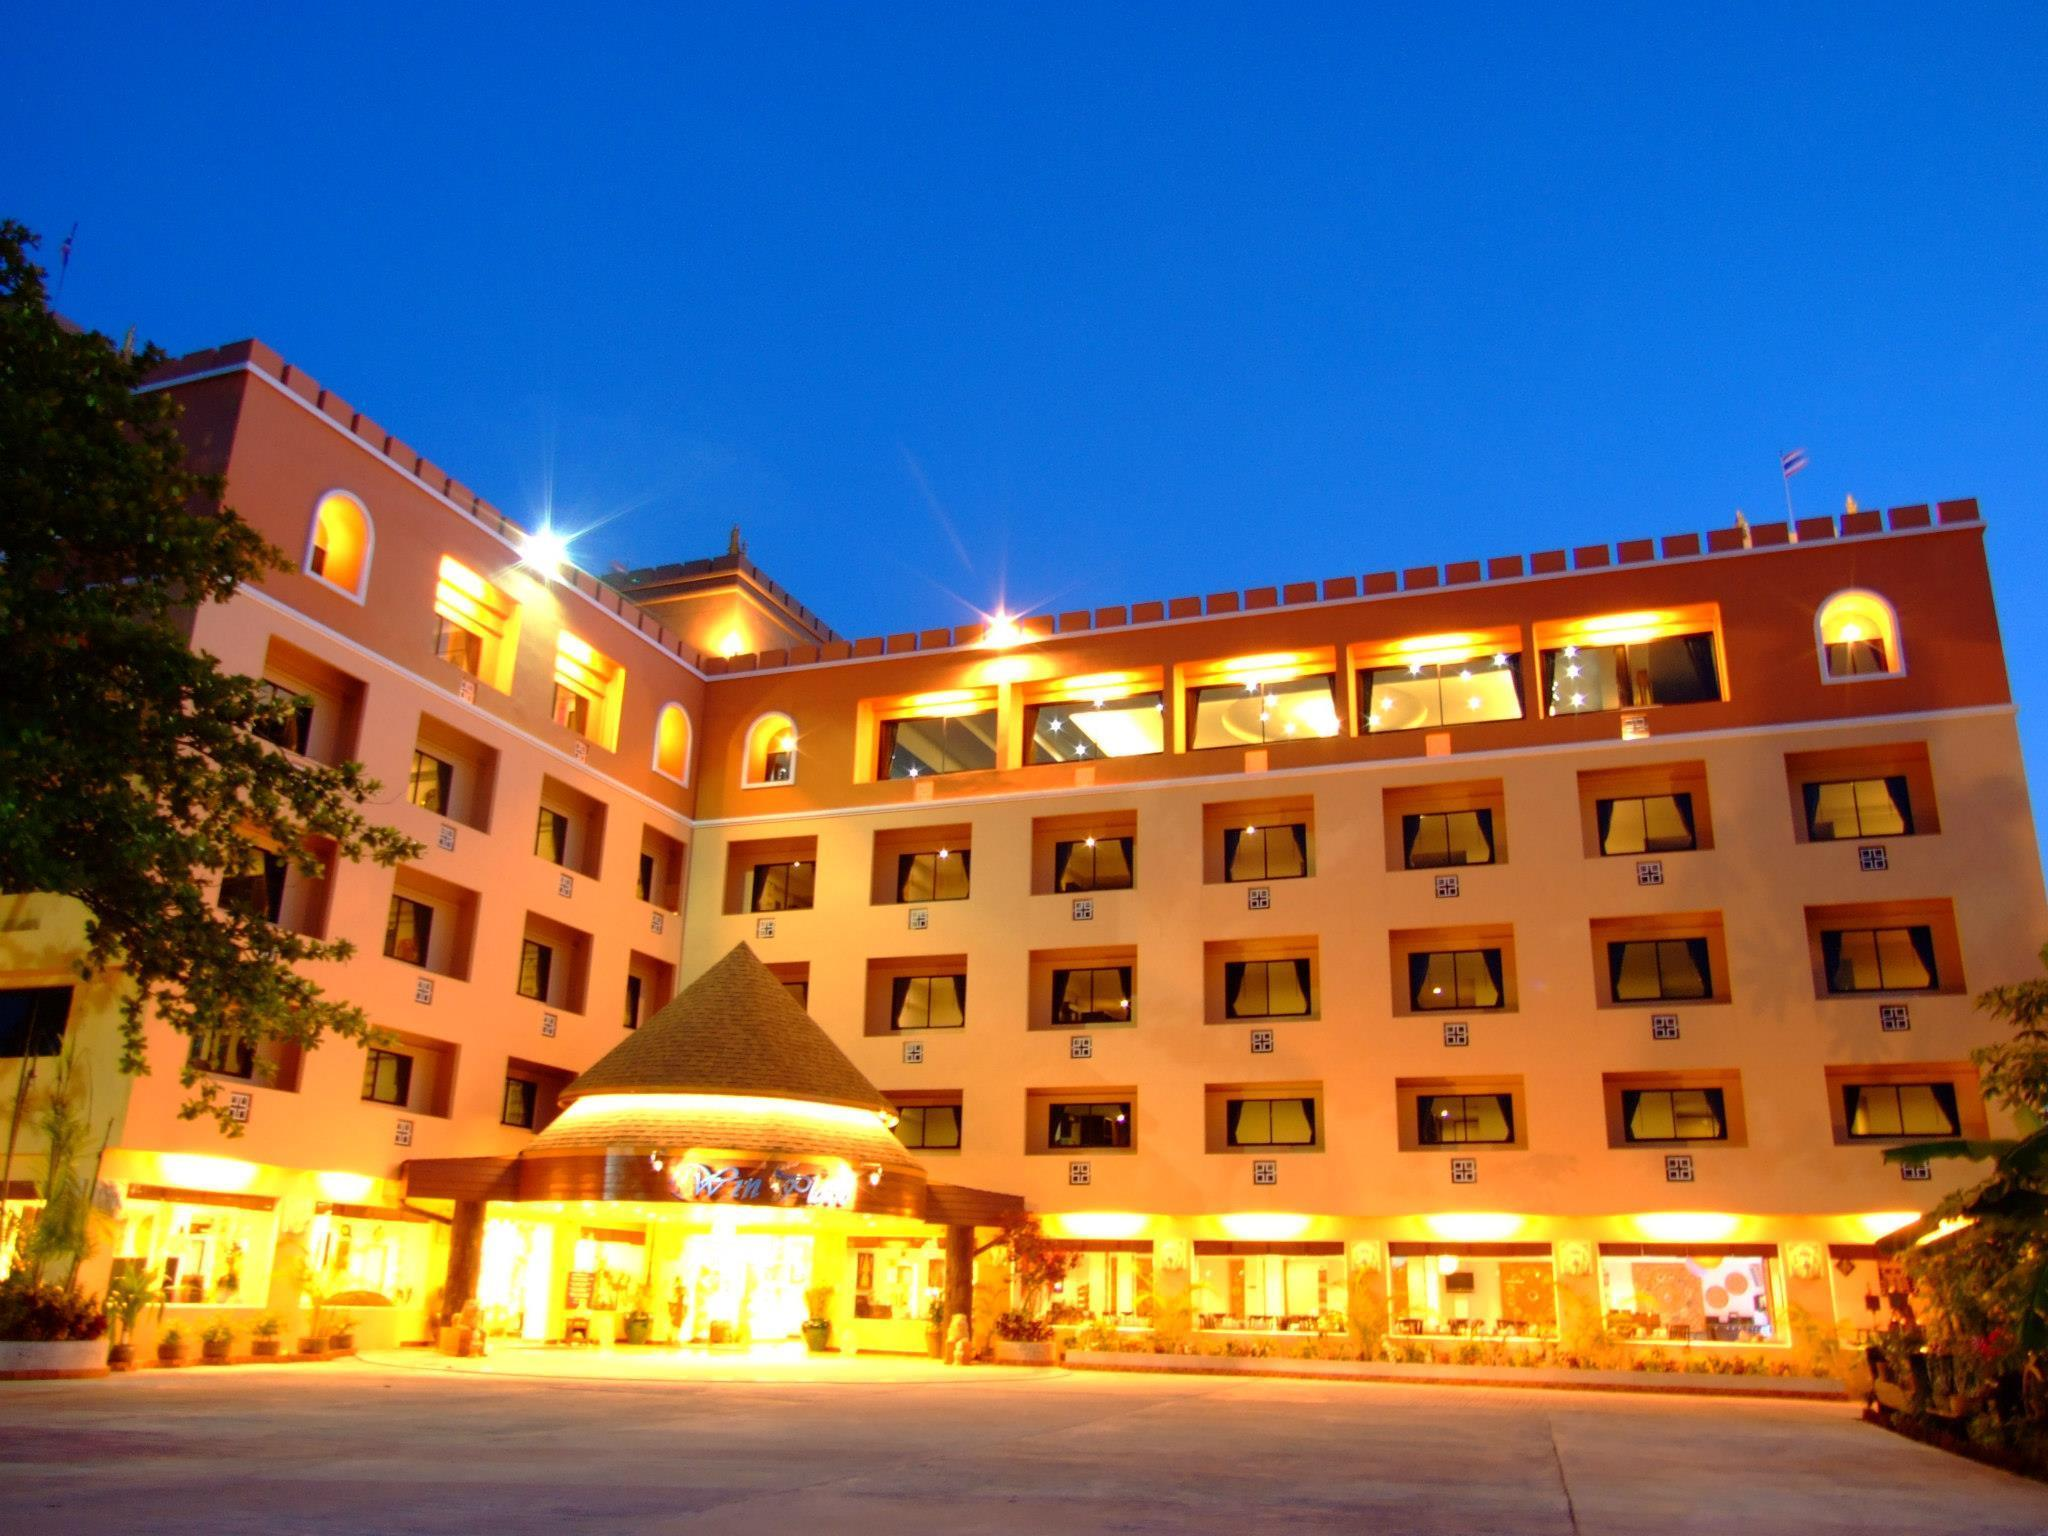 Win Place Hotel Chiang Mai - Hotels and Accommodation in Thailand, Asia